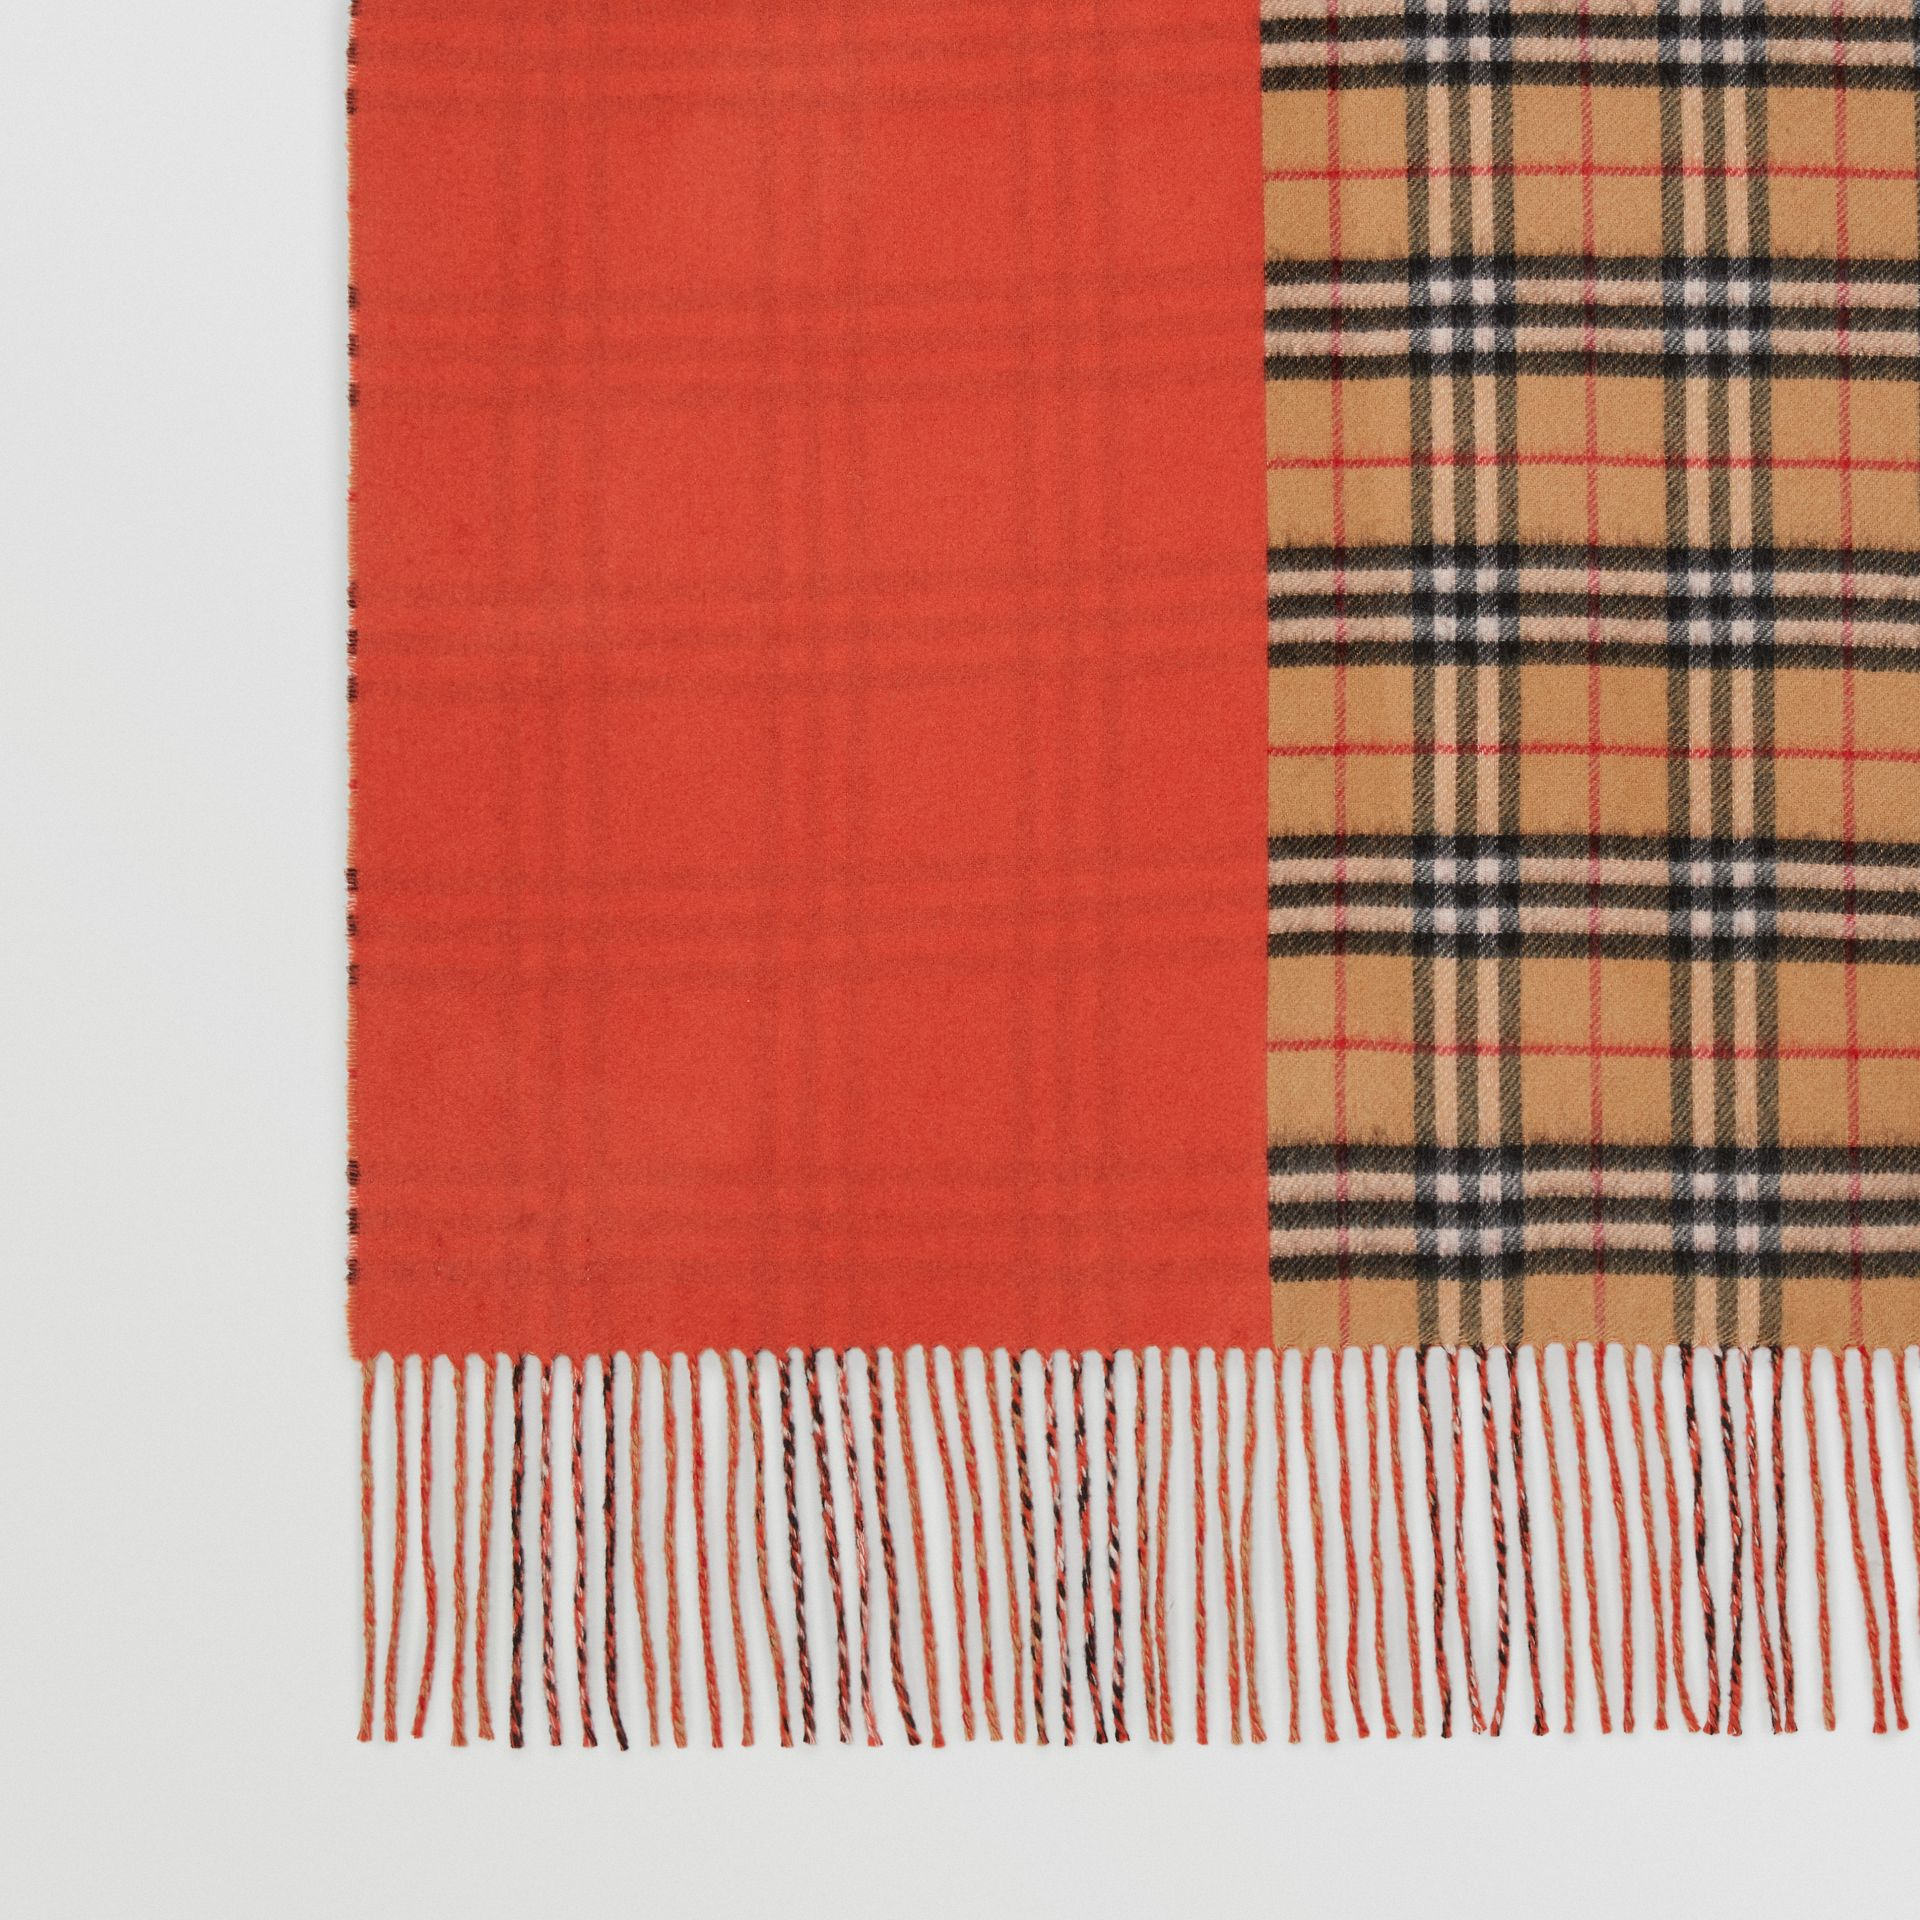 Colour Block Vintage Check Cashmere Scarf in Vibrant Orange | Burberry - gallery image 1